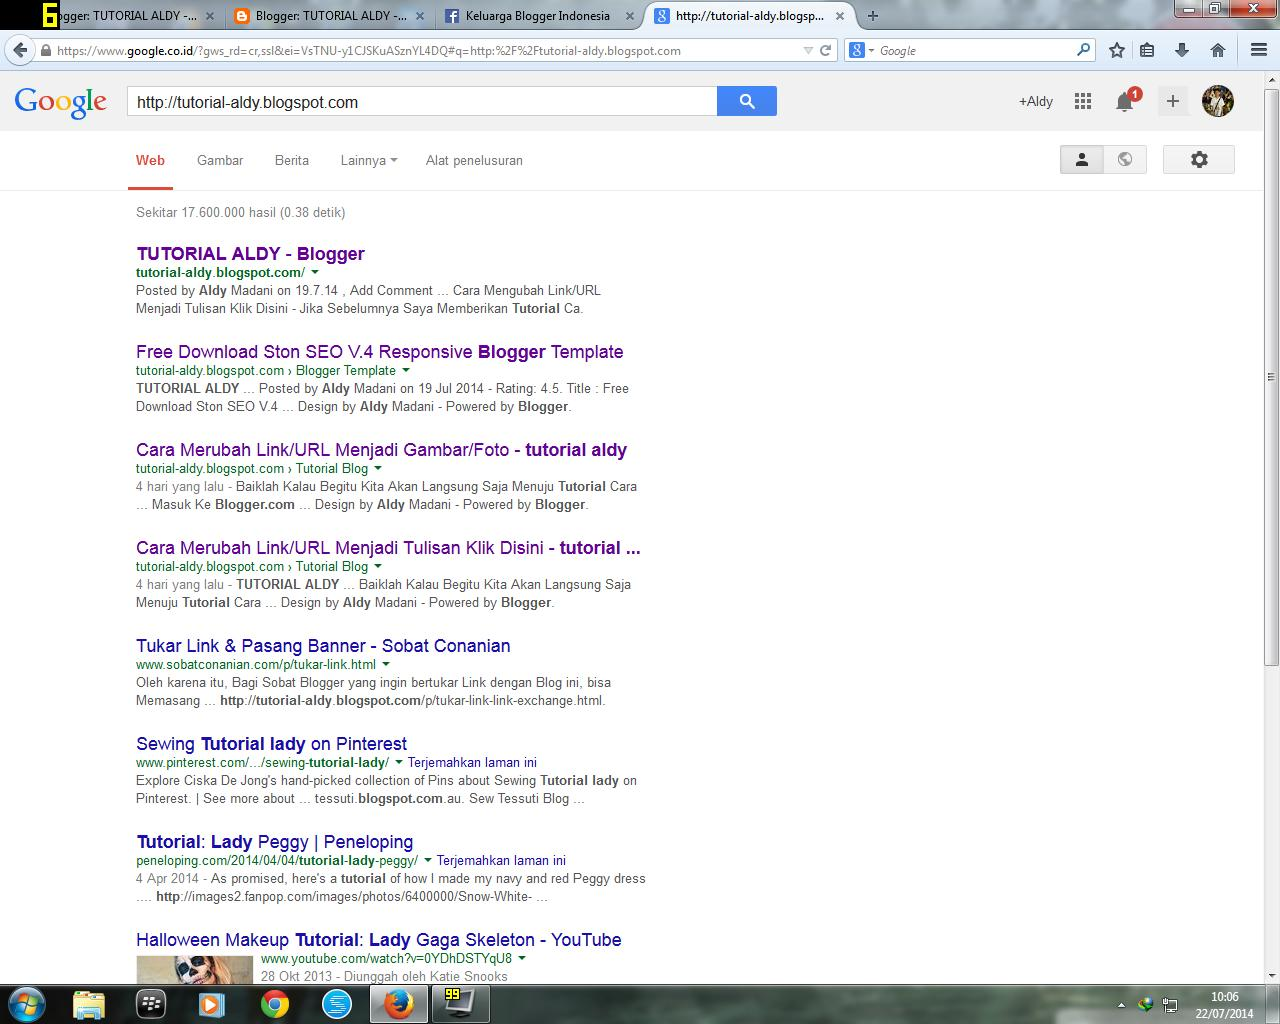 The Result Of Article URL In Google